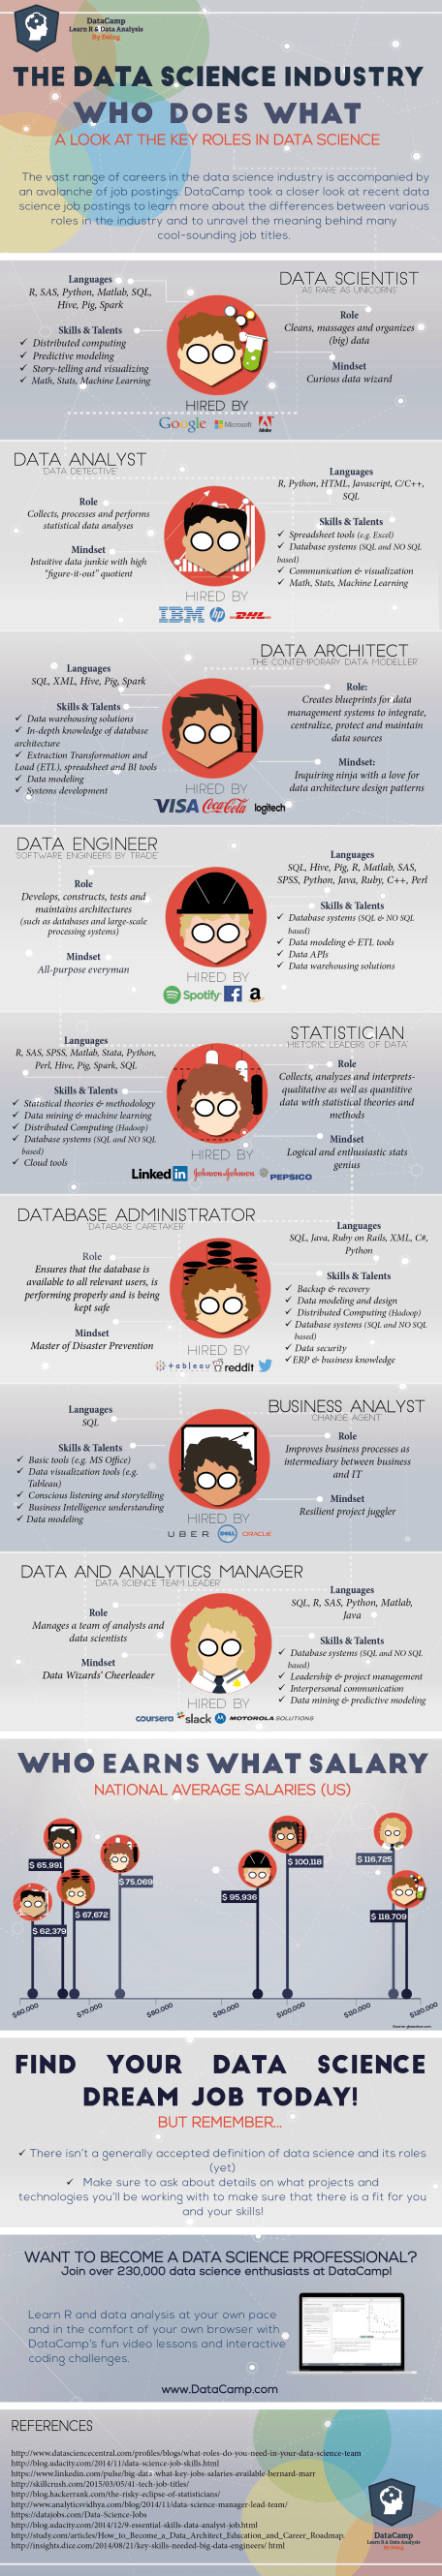 Data Science Jobs Infographic